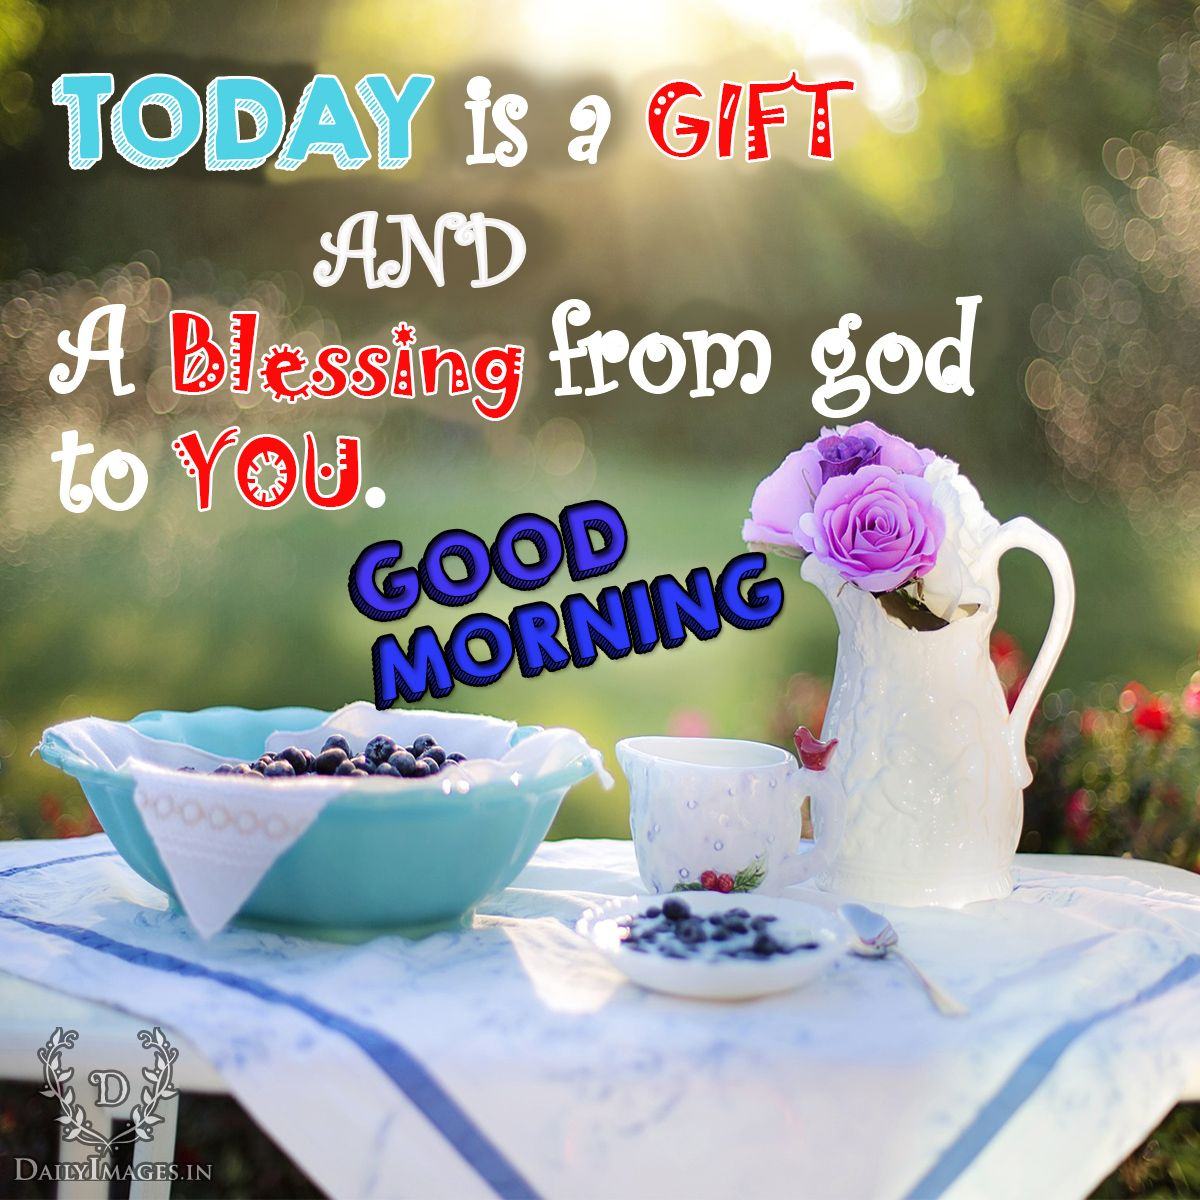 Today Is A Gift And A Blessing From God To You Good Morning